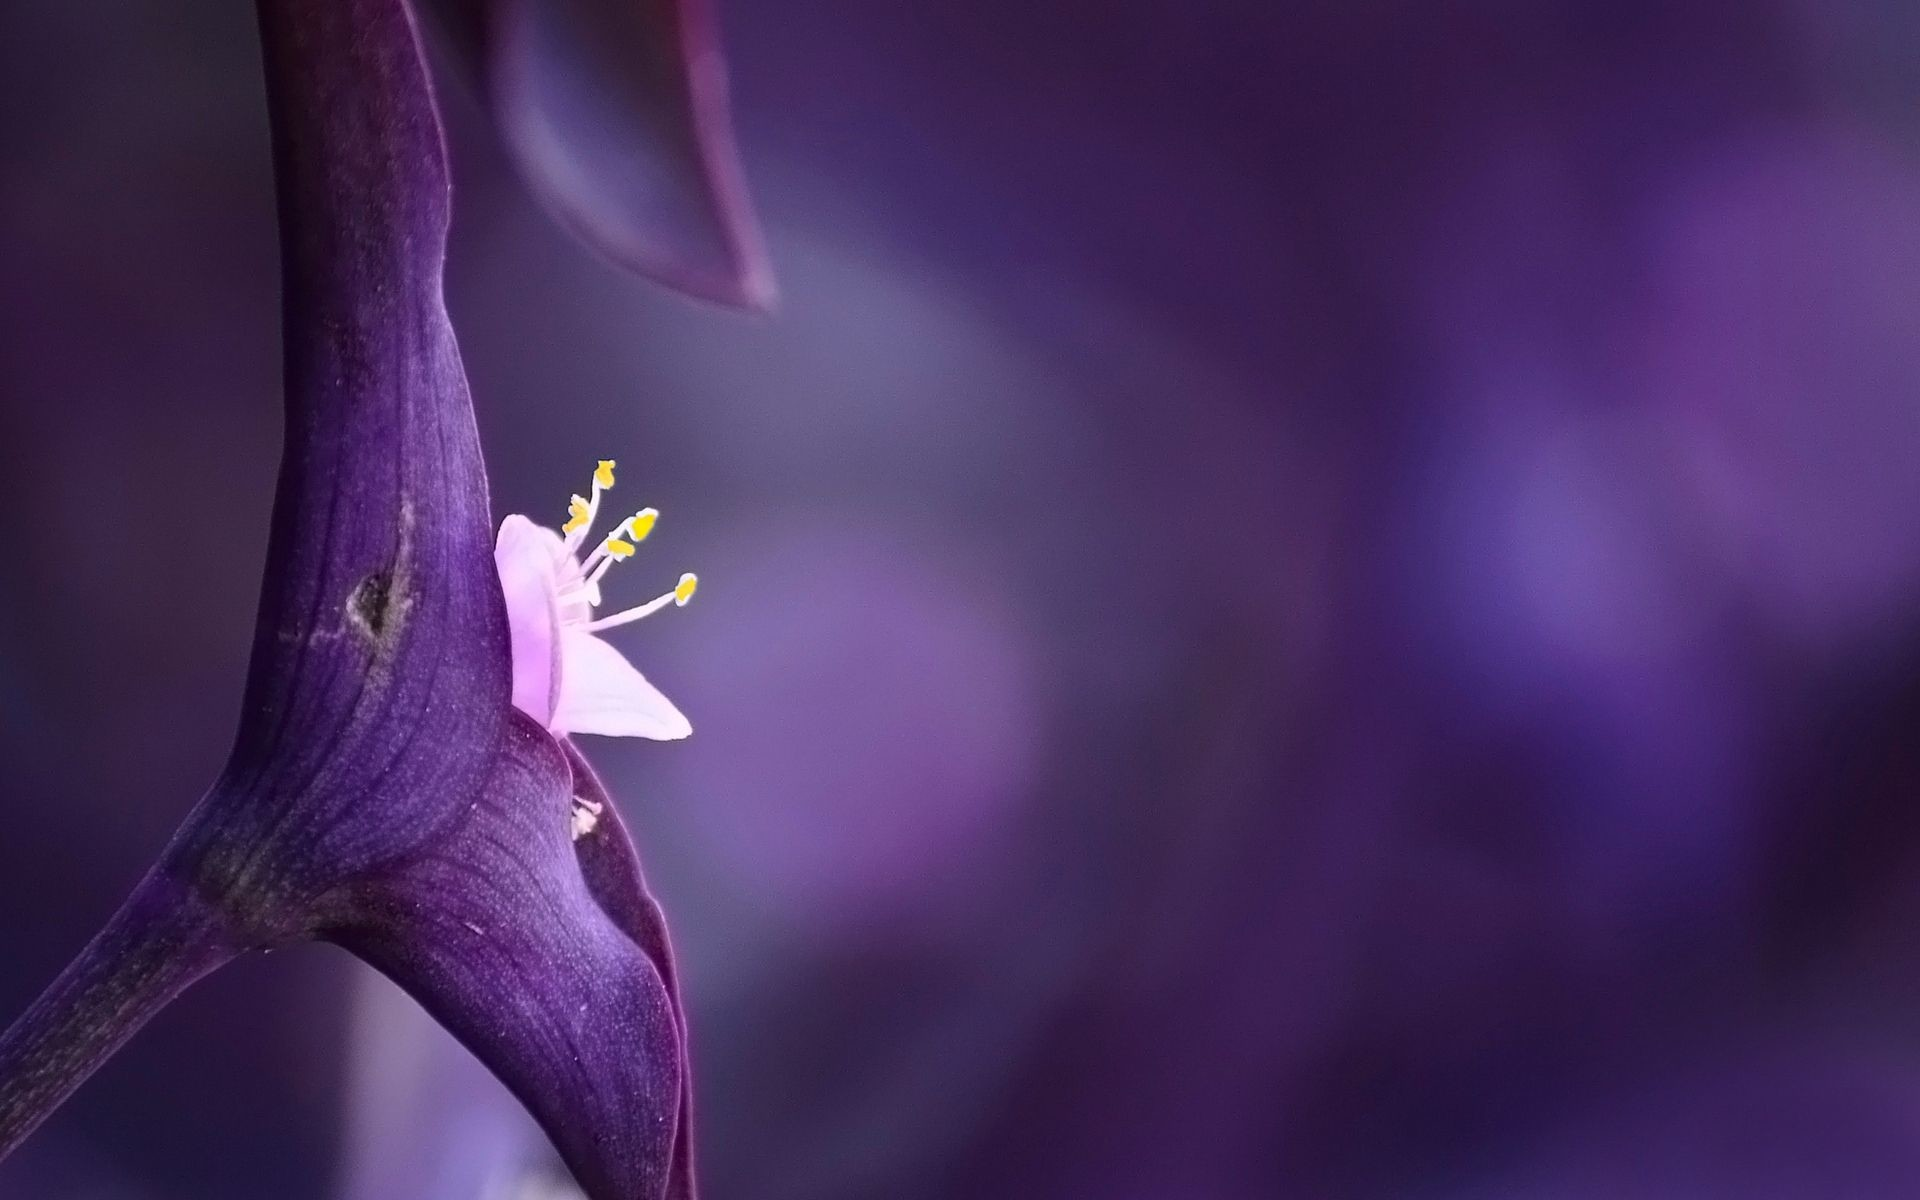 Res: 1920x1200, violet flower images and wallpapers Download